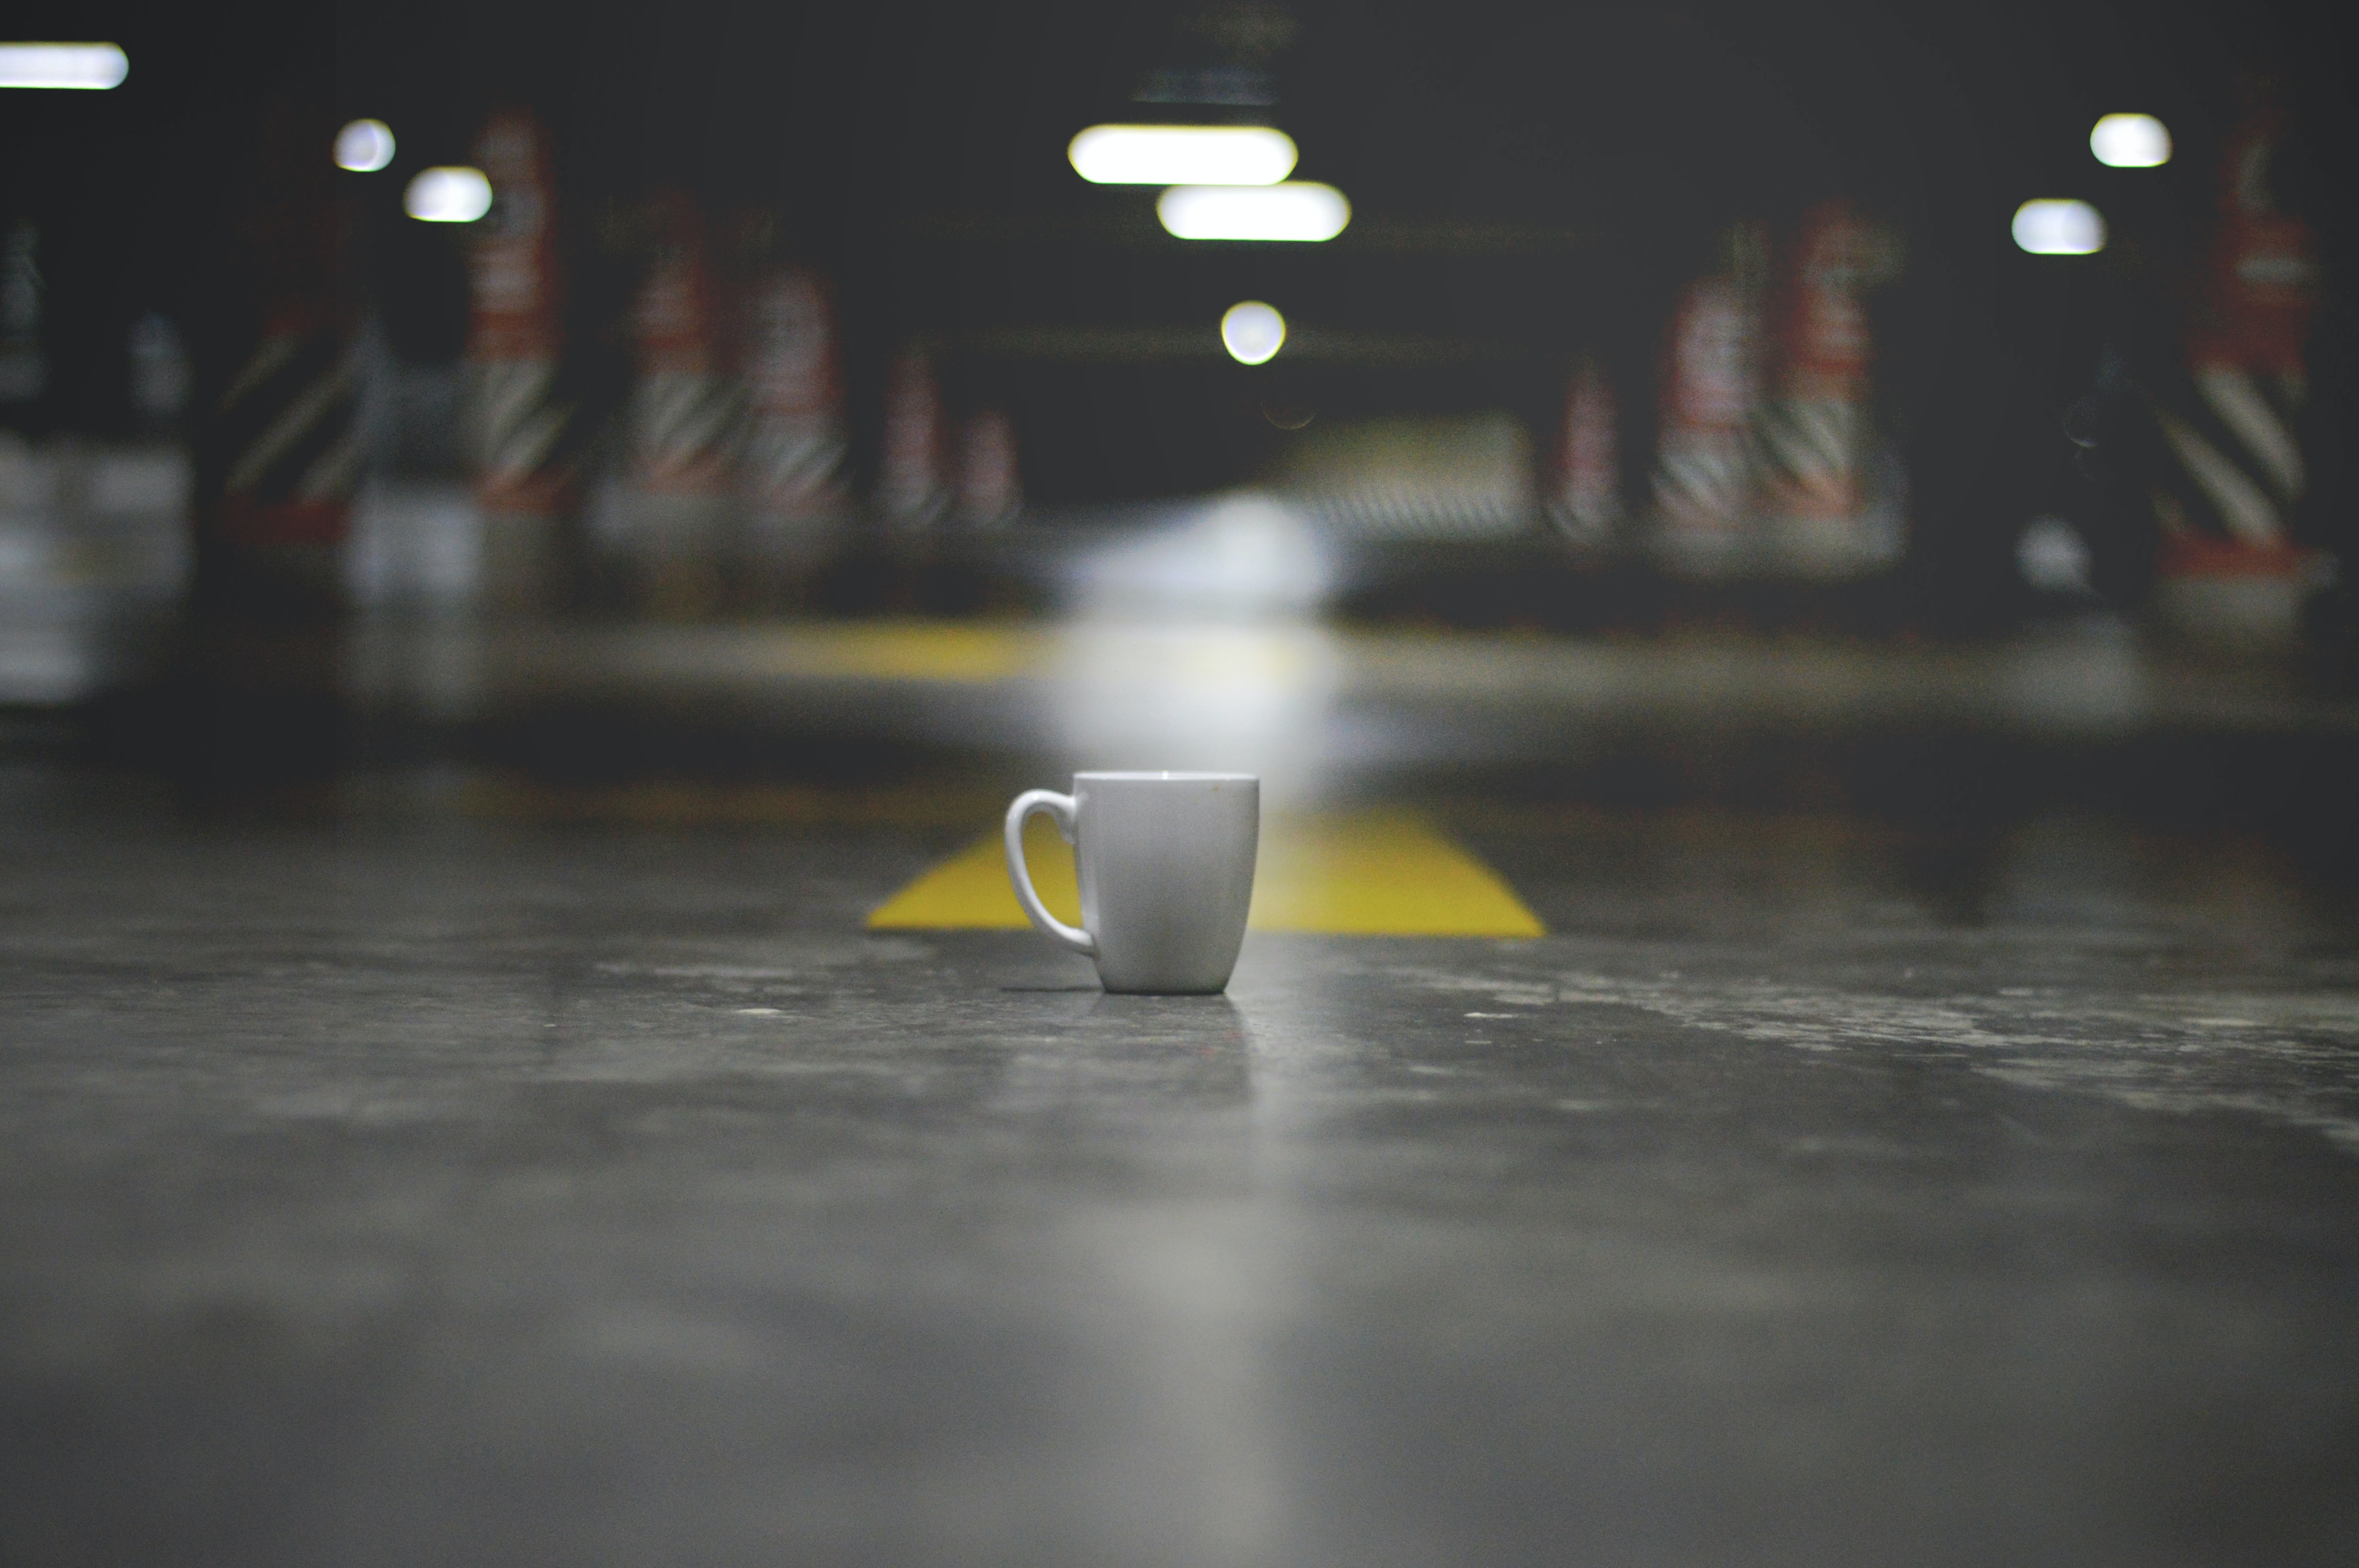 A coffee mug in a garage parking lot